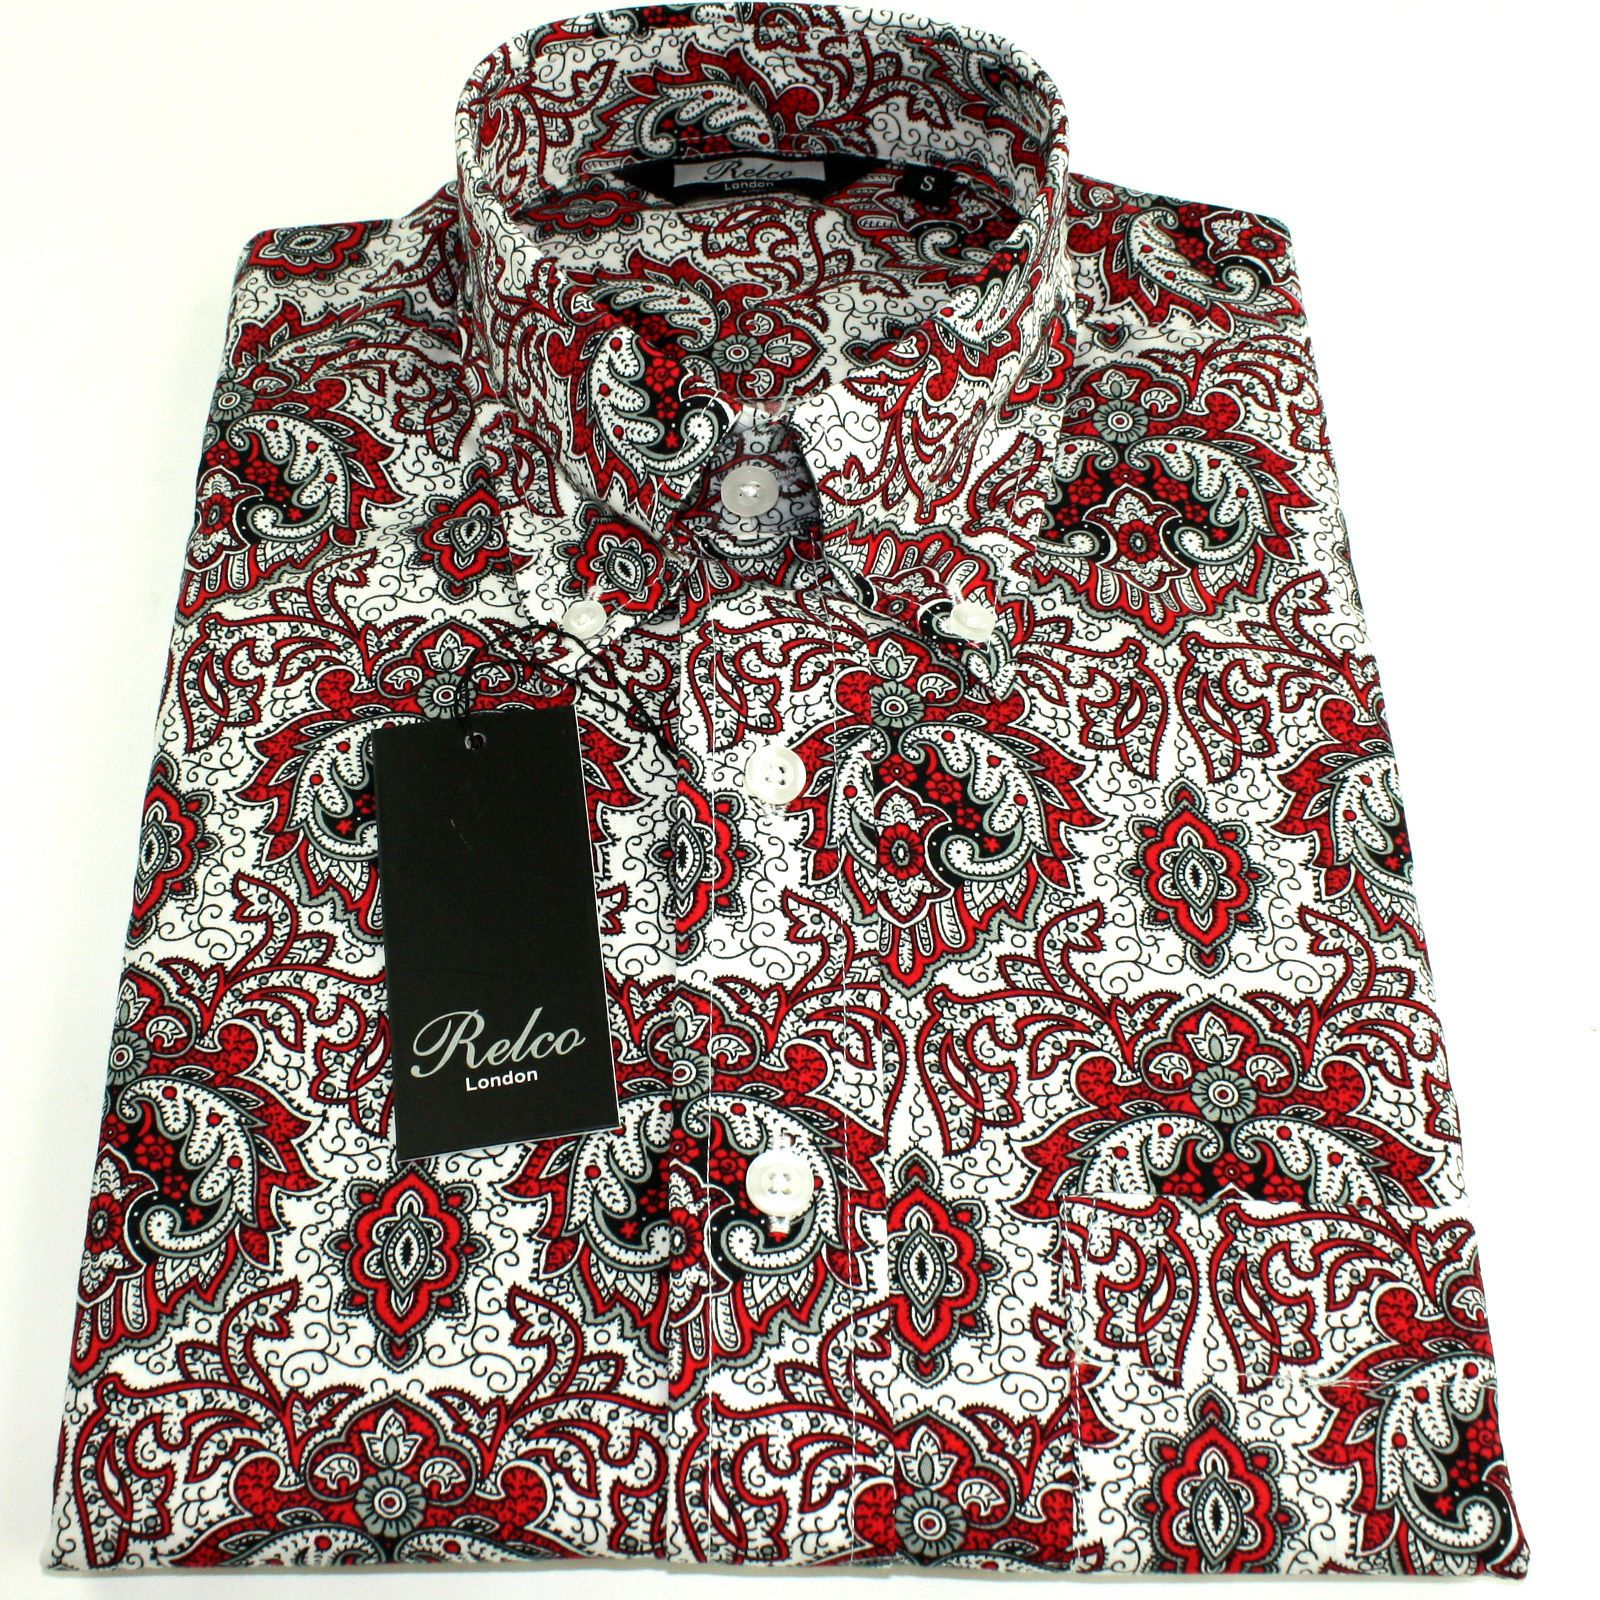 ca8b12029d0d relco-mens-red-black-white-paisley-long-sleeved-shirt-mod-skin-retro-indie- 60s-size-preserve-listing-26707-p.jpg